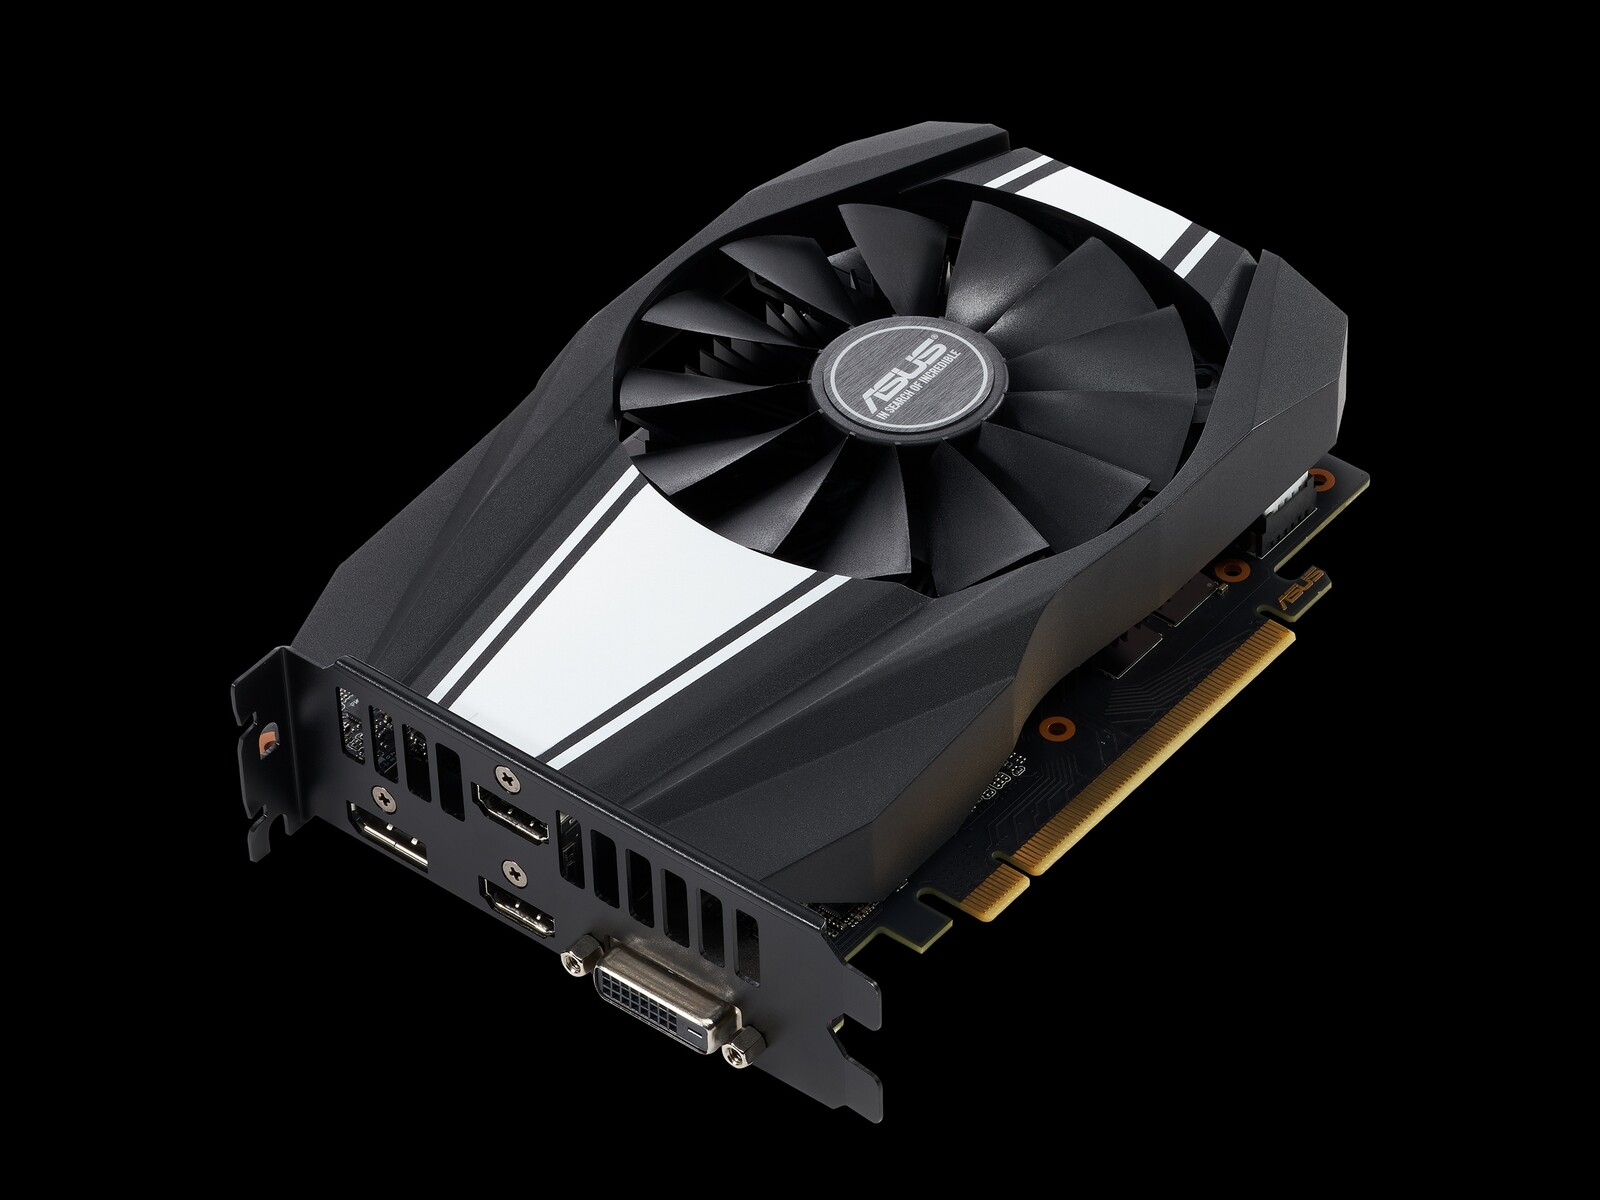 GeForce RTX 2060 is only 5 to 10 percent faster than the GTX